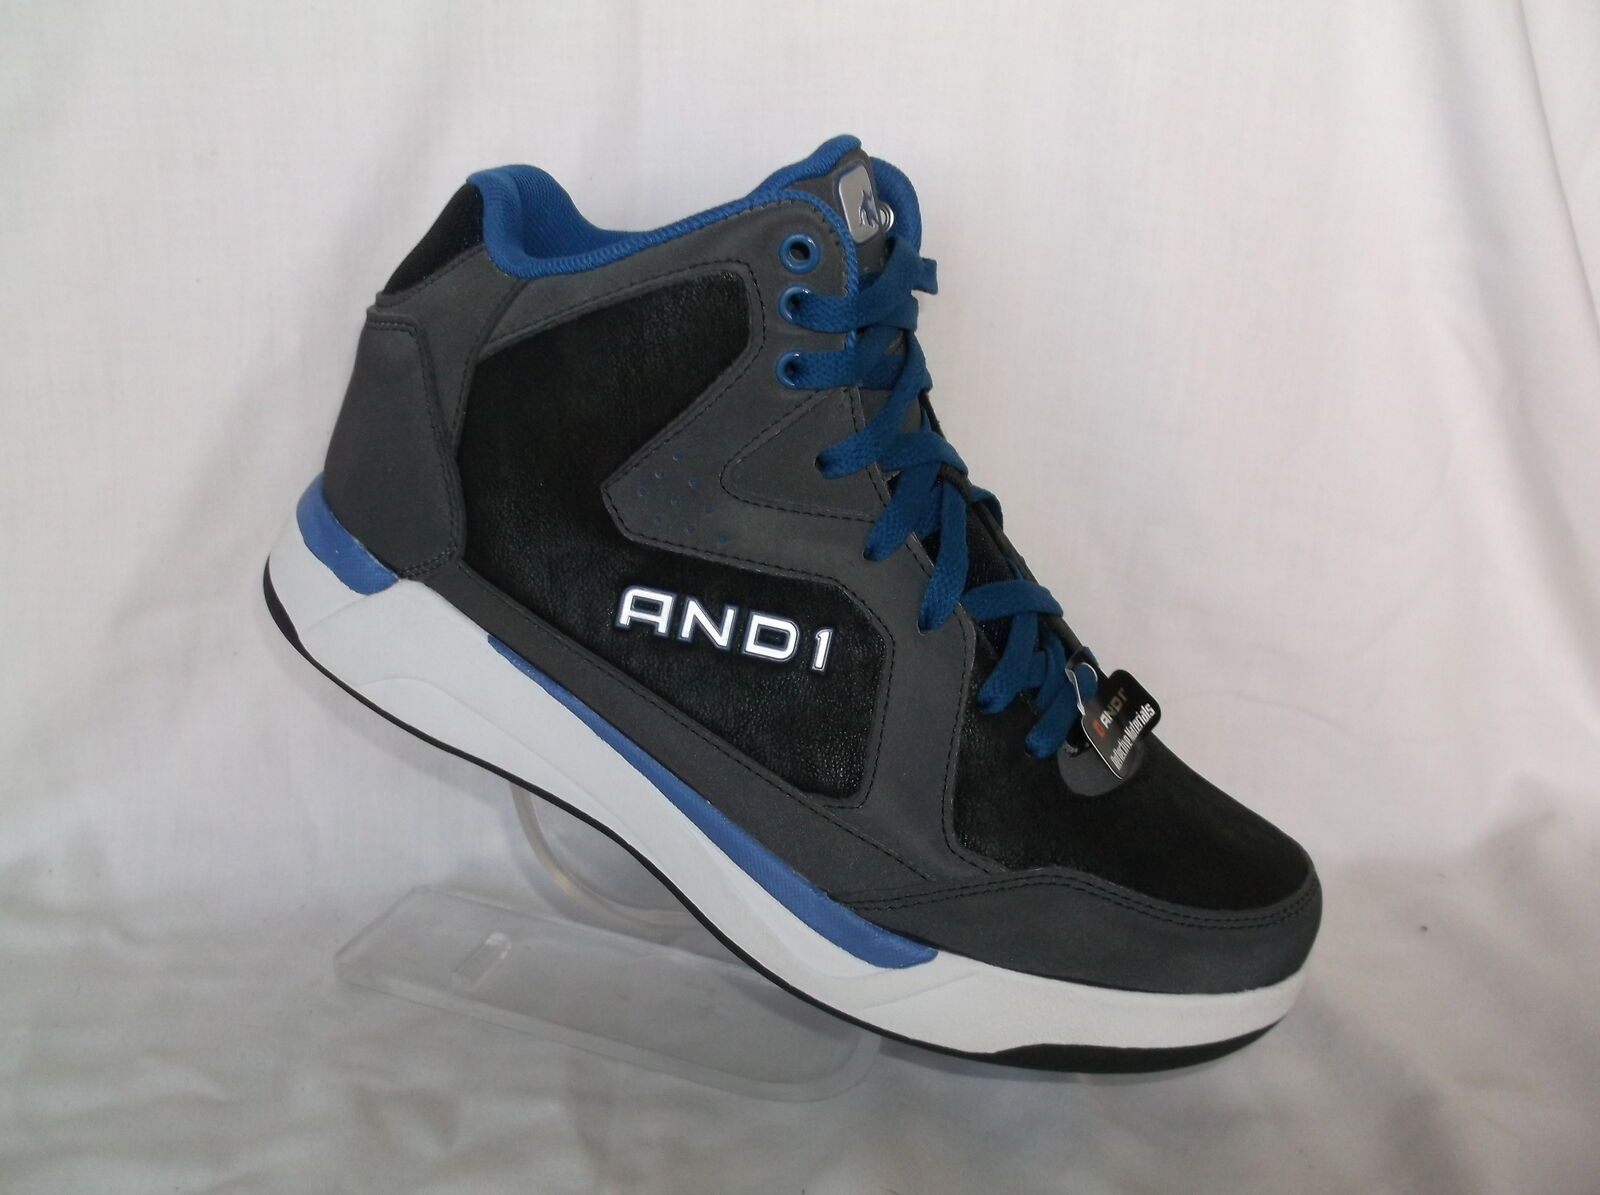 AND1 (AMBASSADOR) COMFORT PADDED SHOE NON MARKING OUTSOLE MENS ATHLETIC SHOE PADDED NIB 65852f